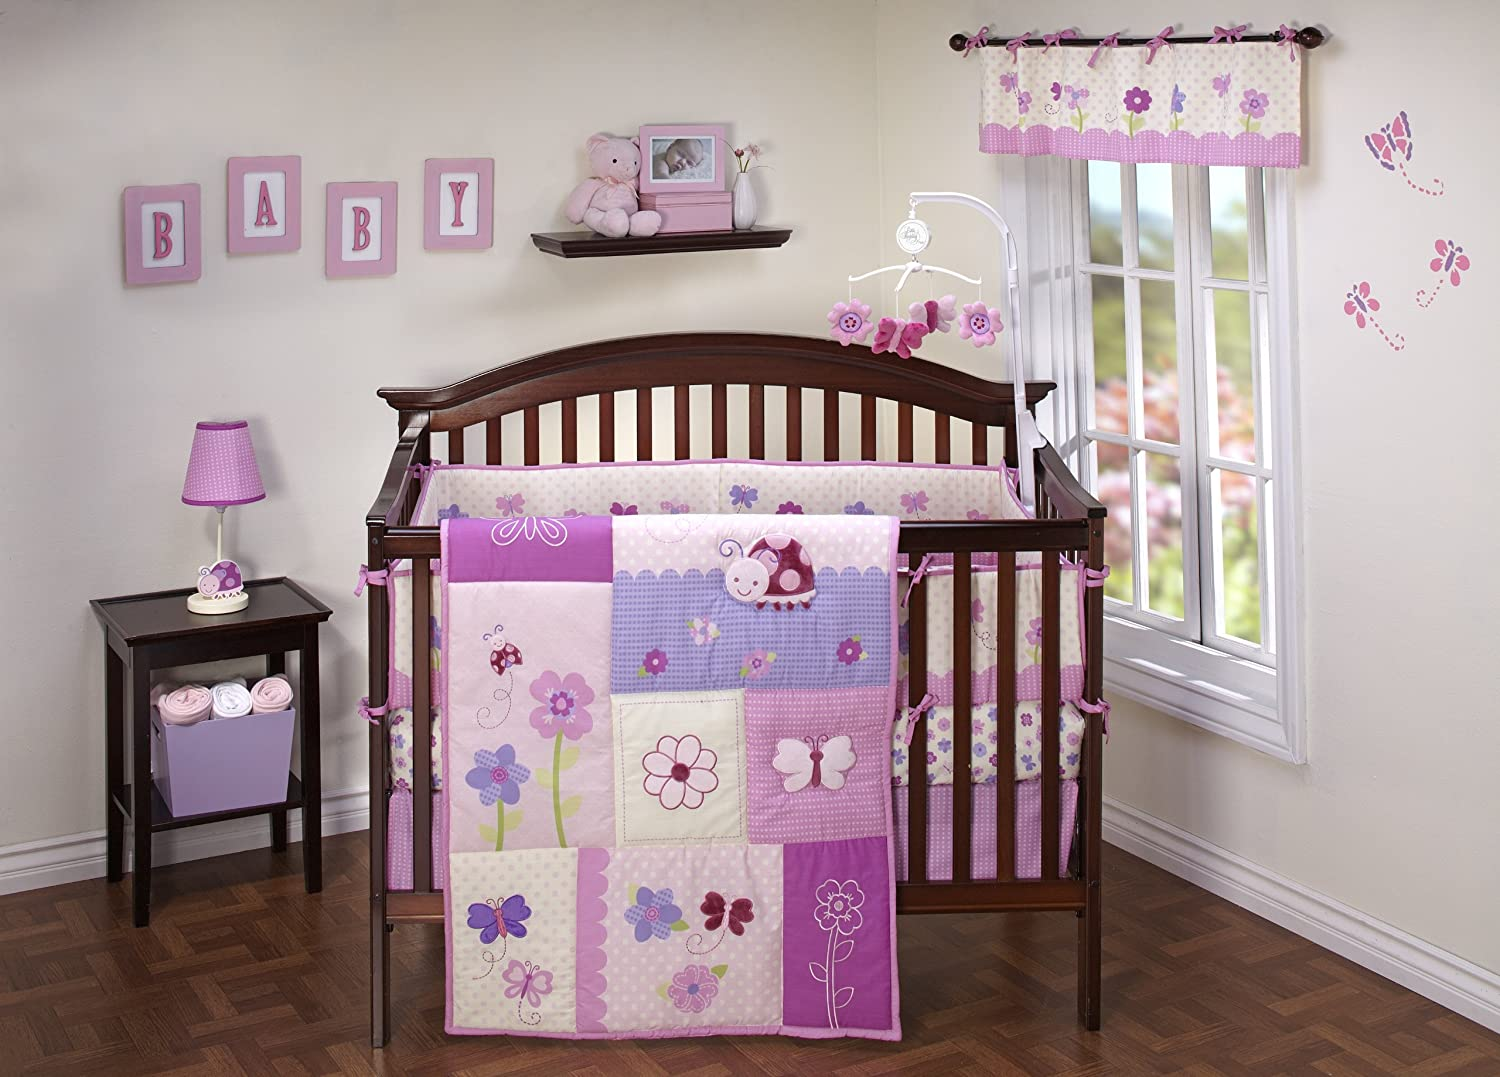 Nojo butterfly kisses baby bedding baby bedding and for Cuartos decorados para bebes